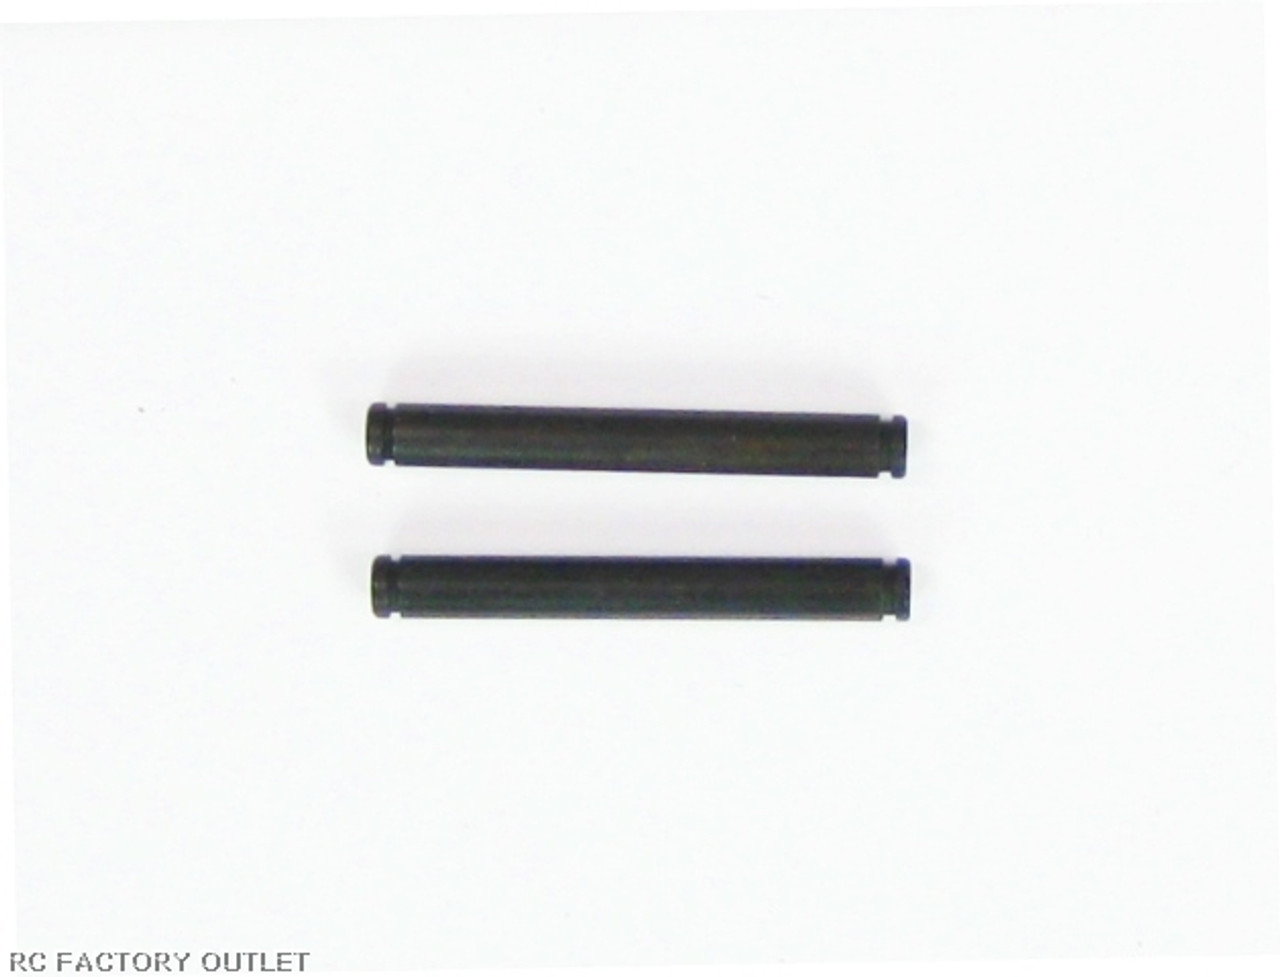 02062 FRONT LOWER ARM ROUND PIN B 2 PCS